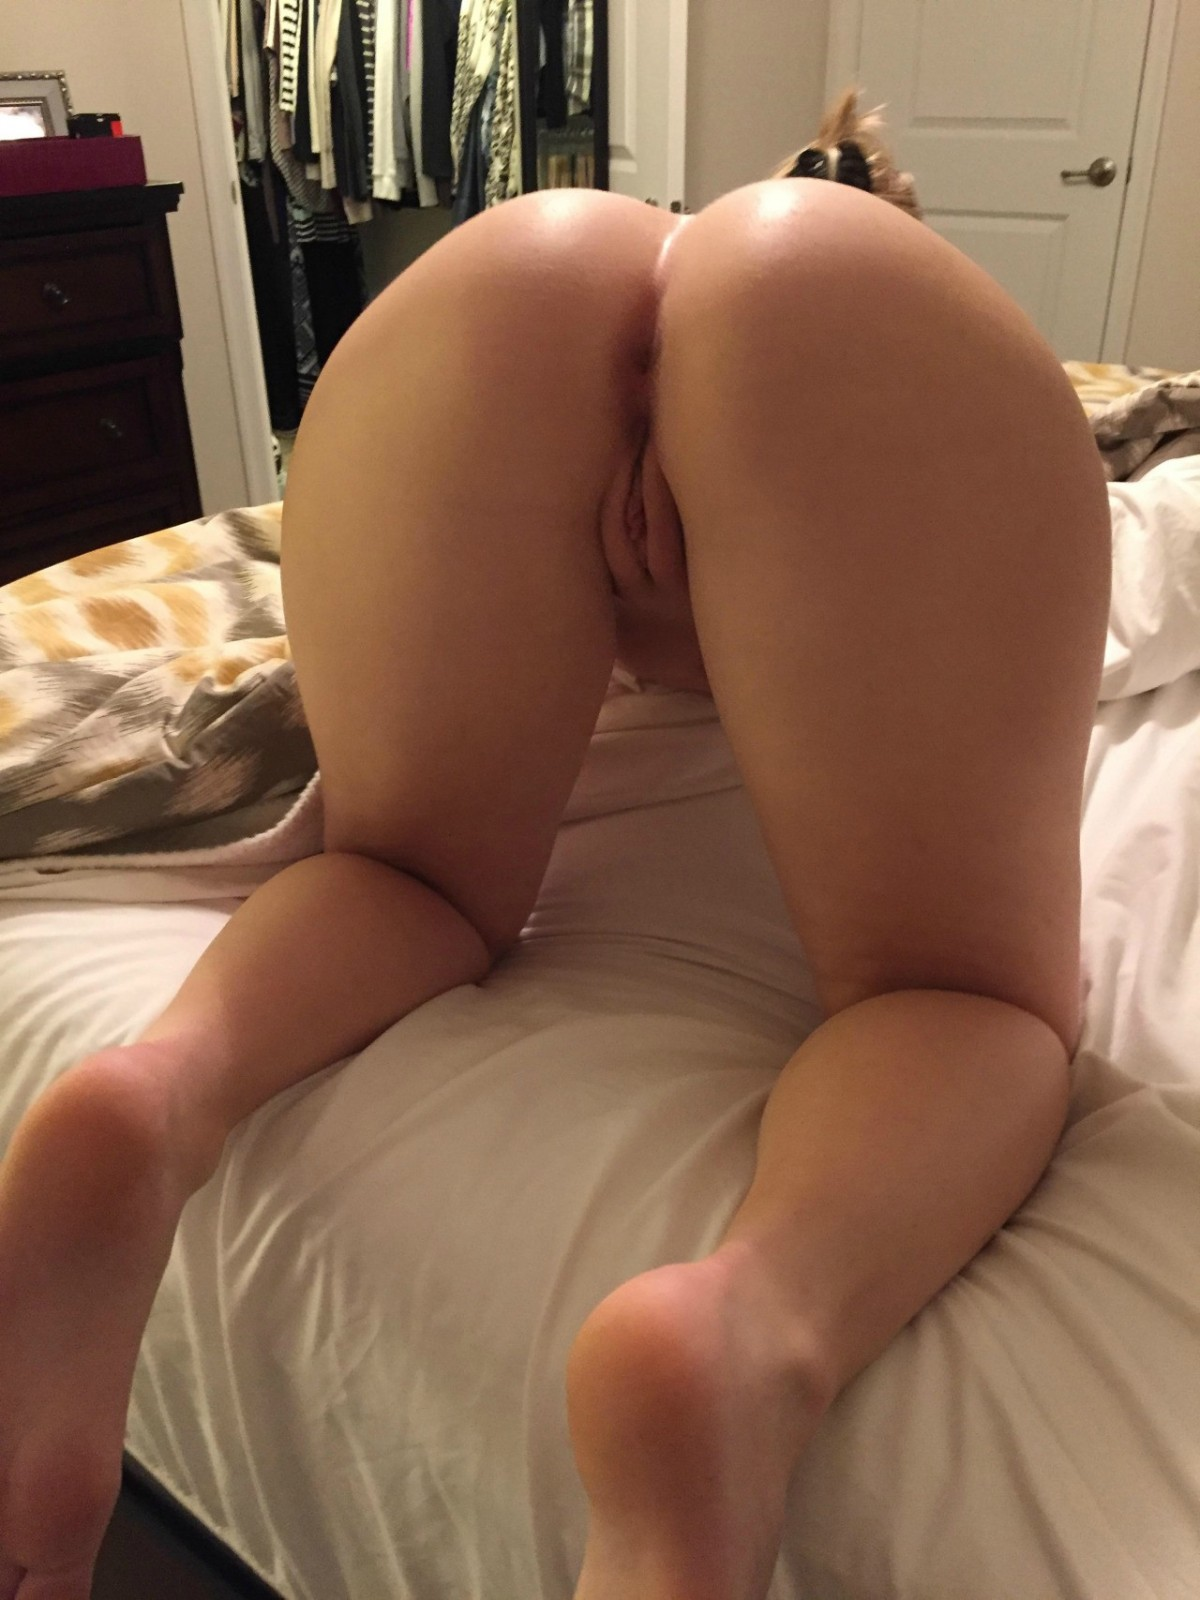 shaking naked legs spread